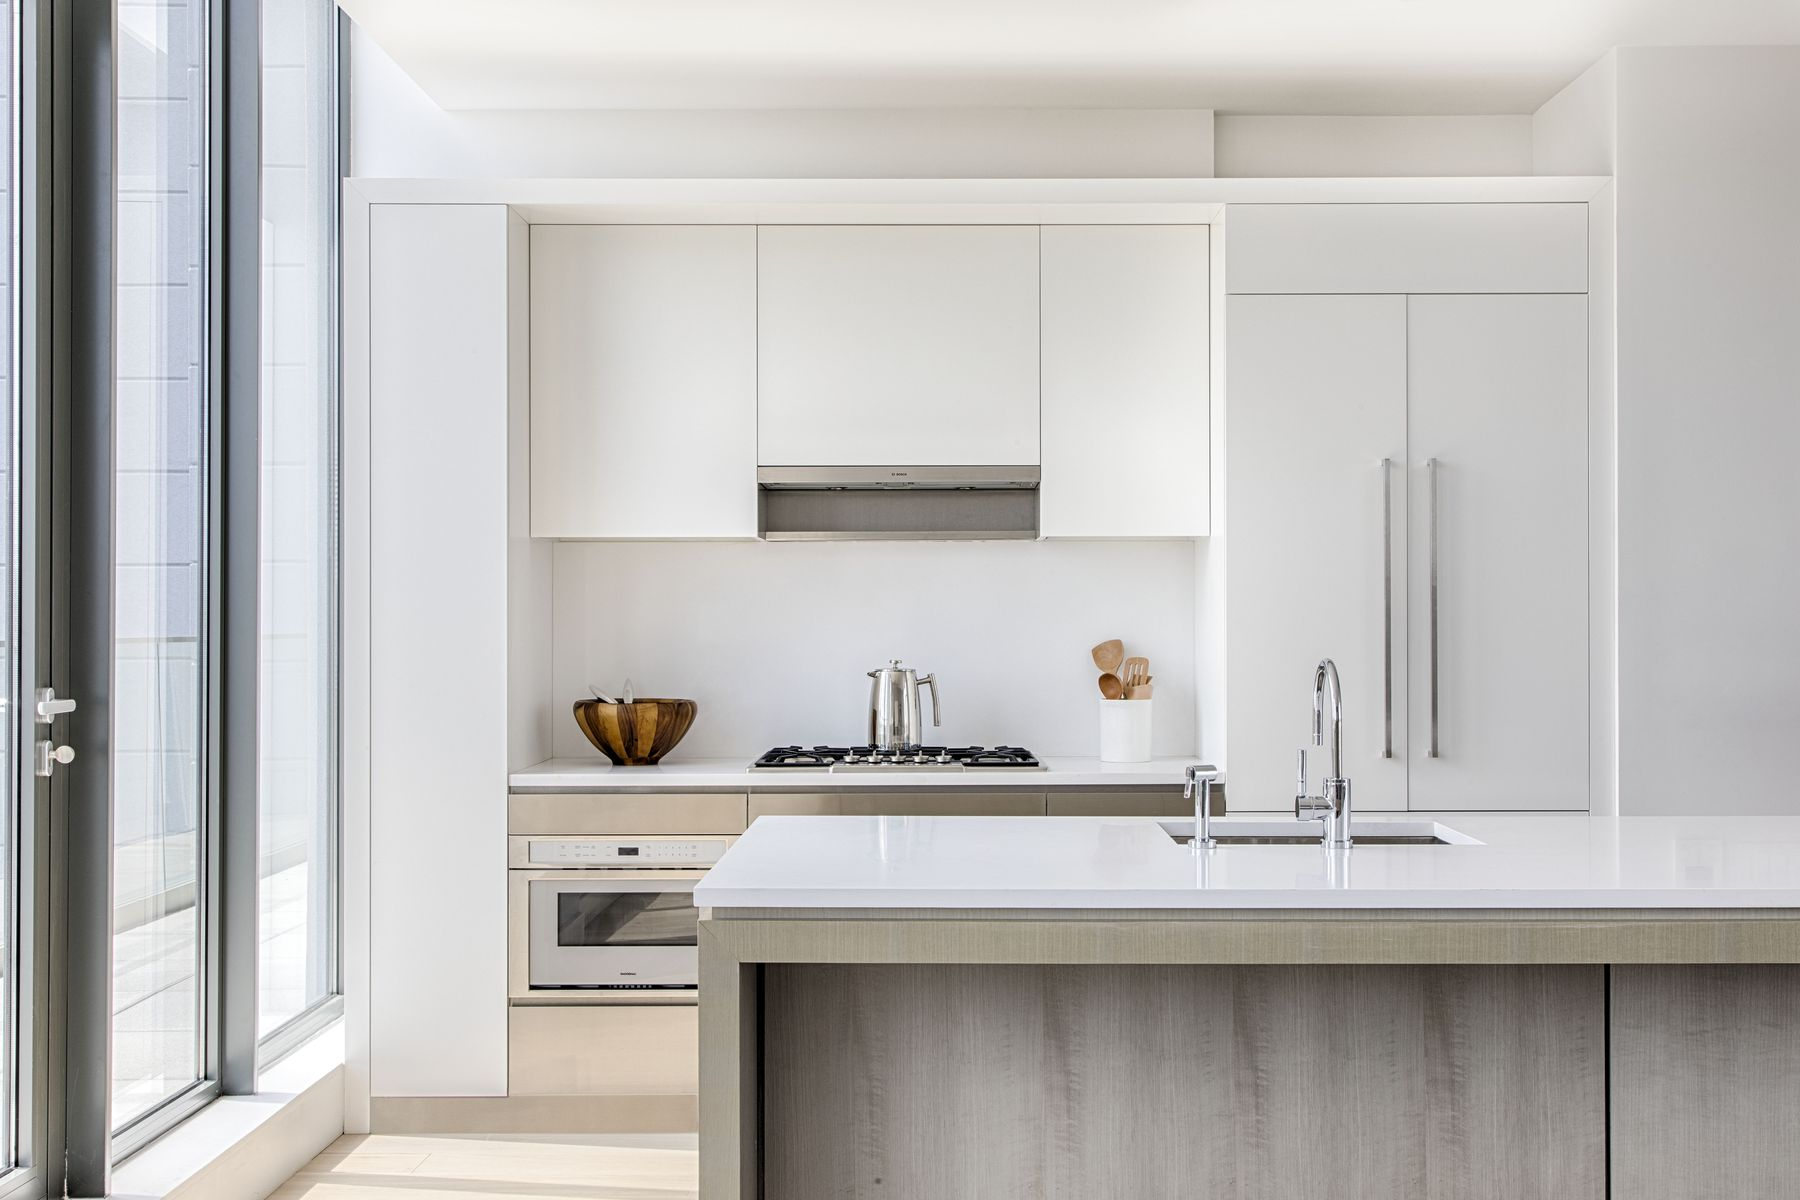 New Images Released of Park Slope's 251 1st Street Designed by ODA